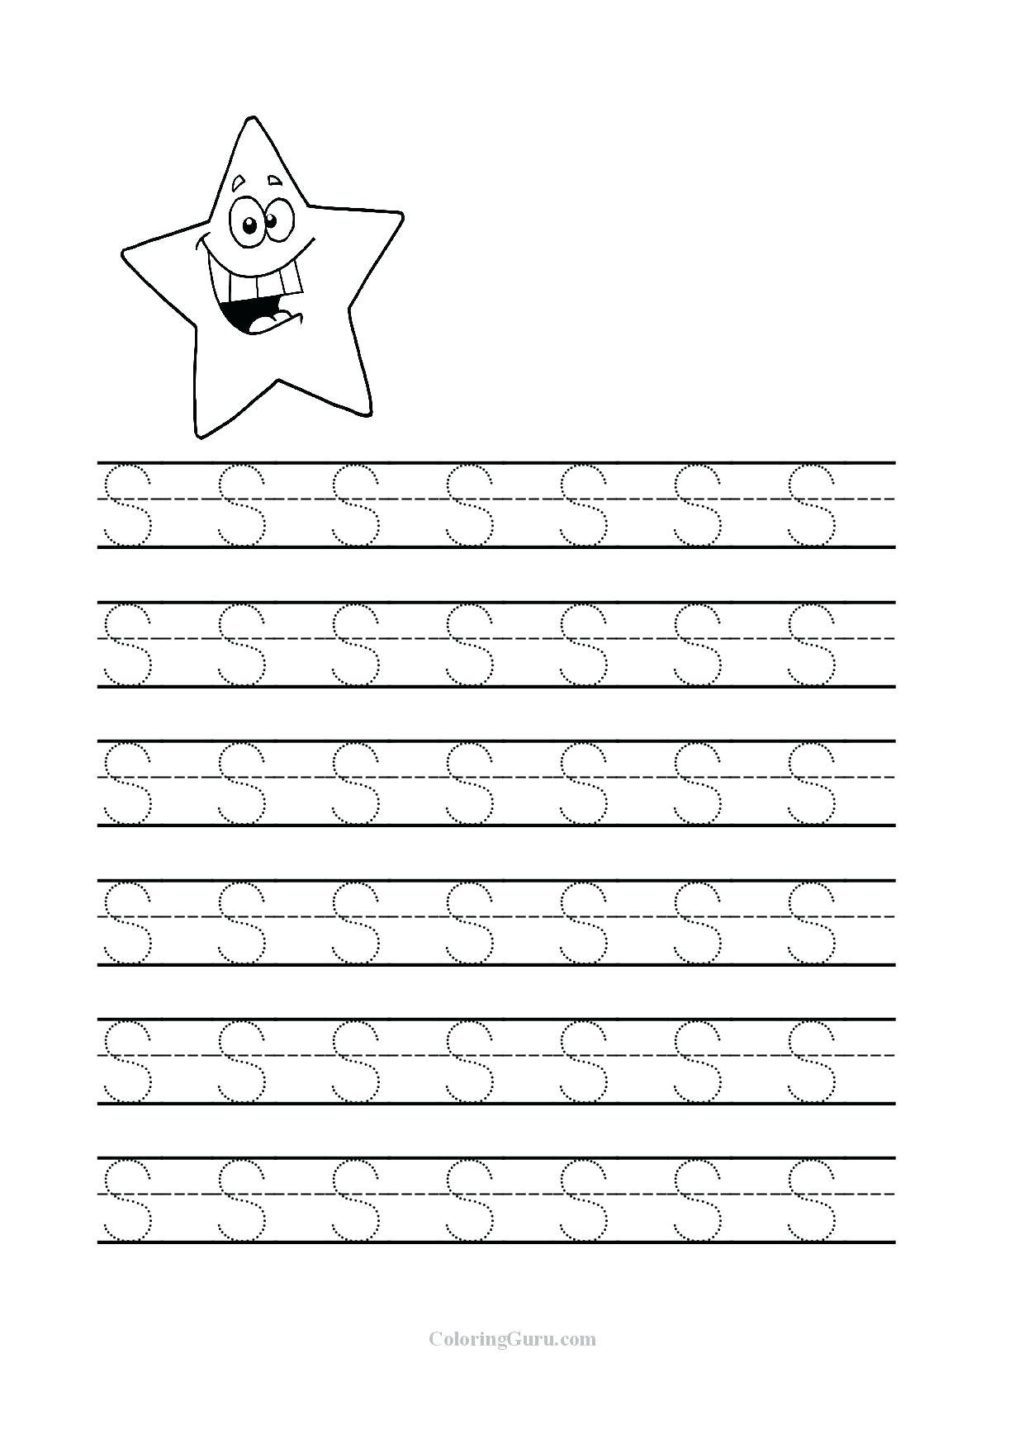 Worksheet Preschool Tracing Letters Worksheet Free